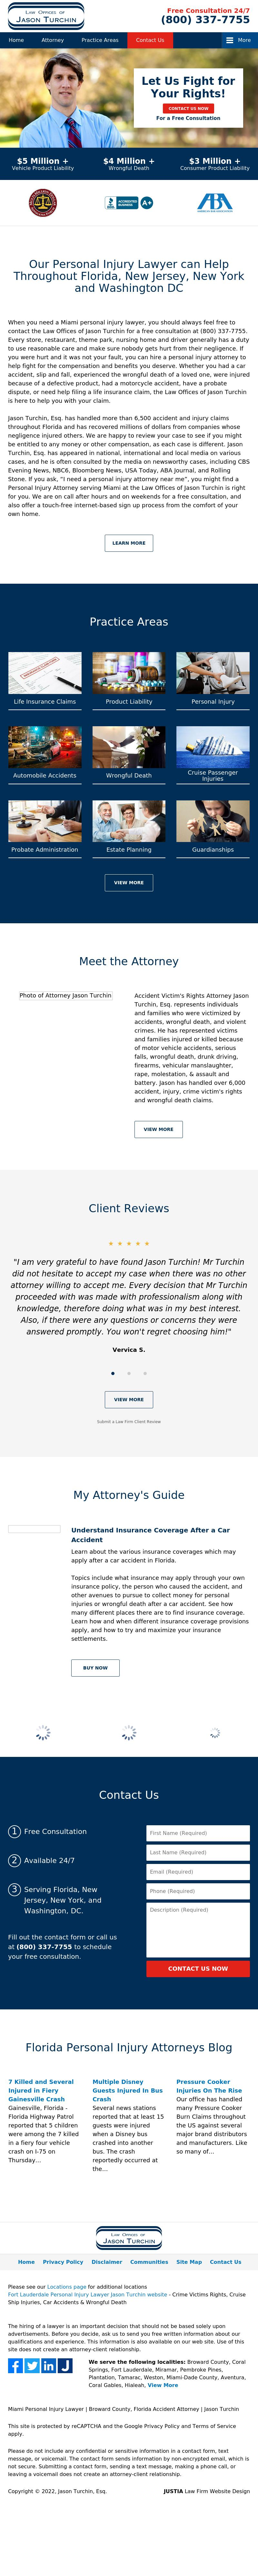 Law Offices of Jason Turchin - New York NY Lawyers